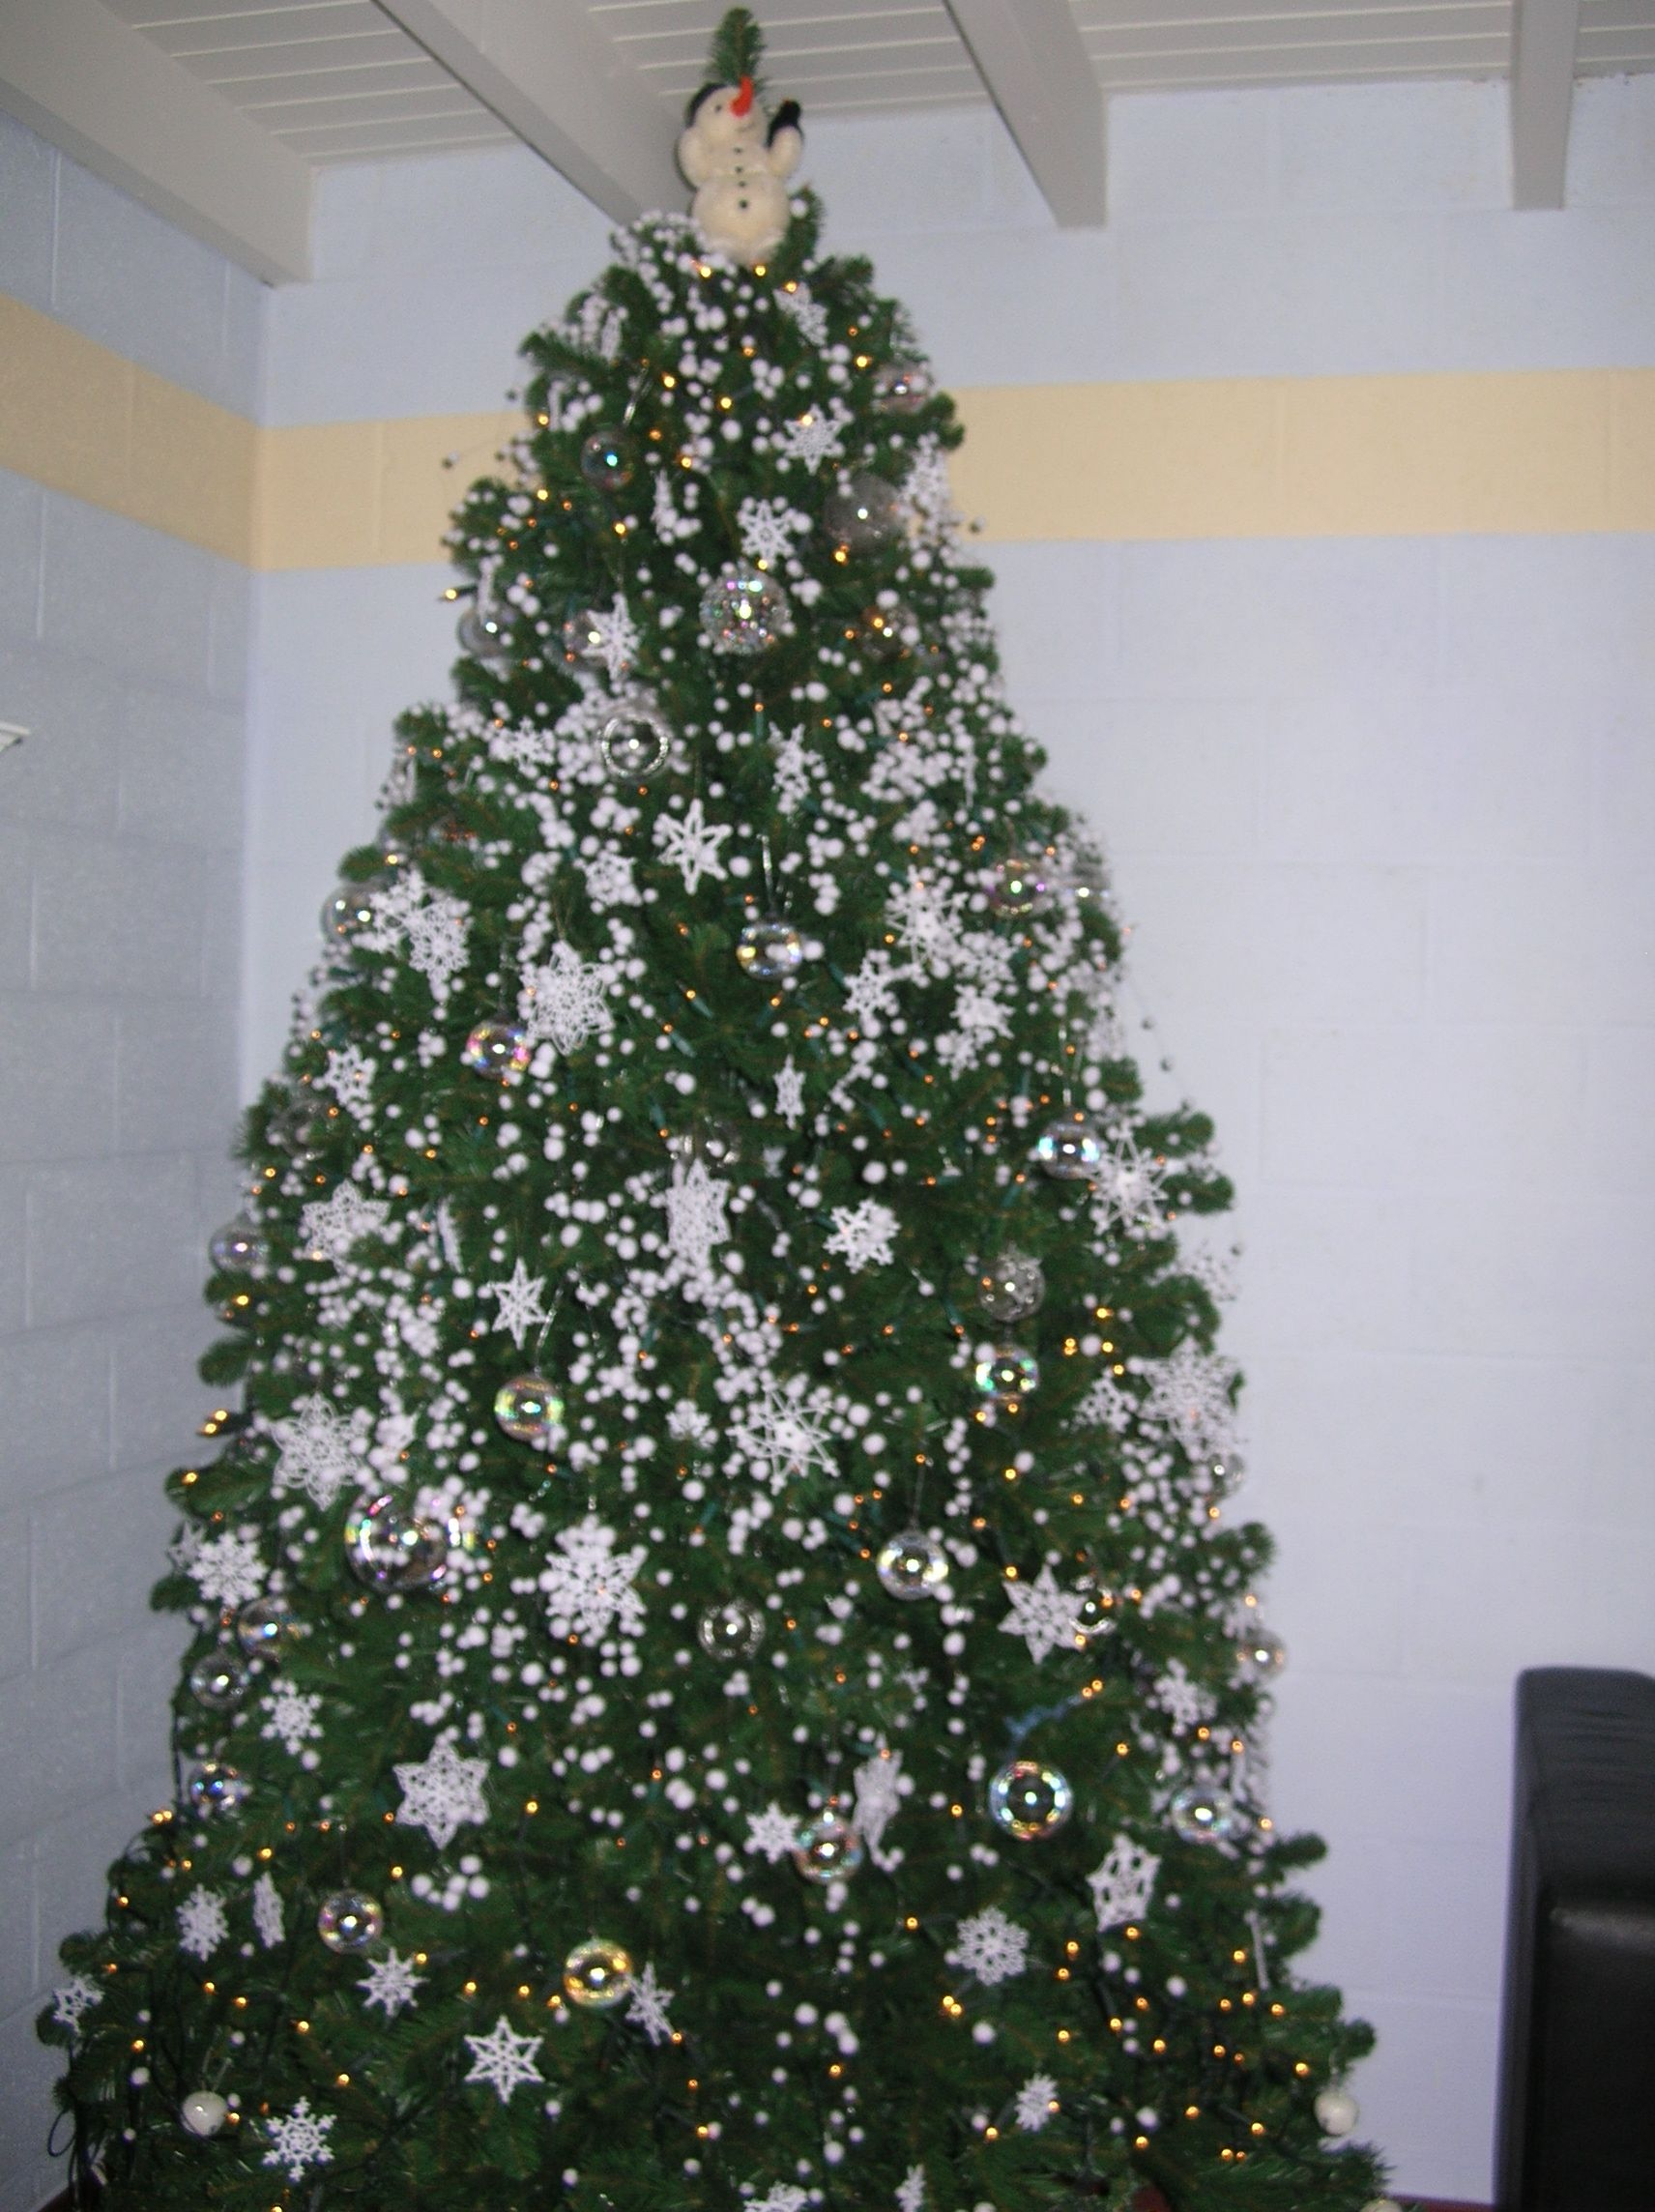 Chrochet snowflakes tree